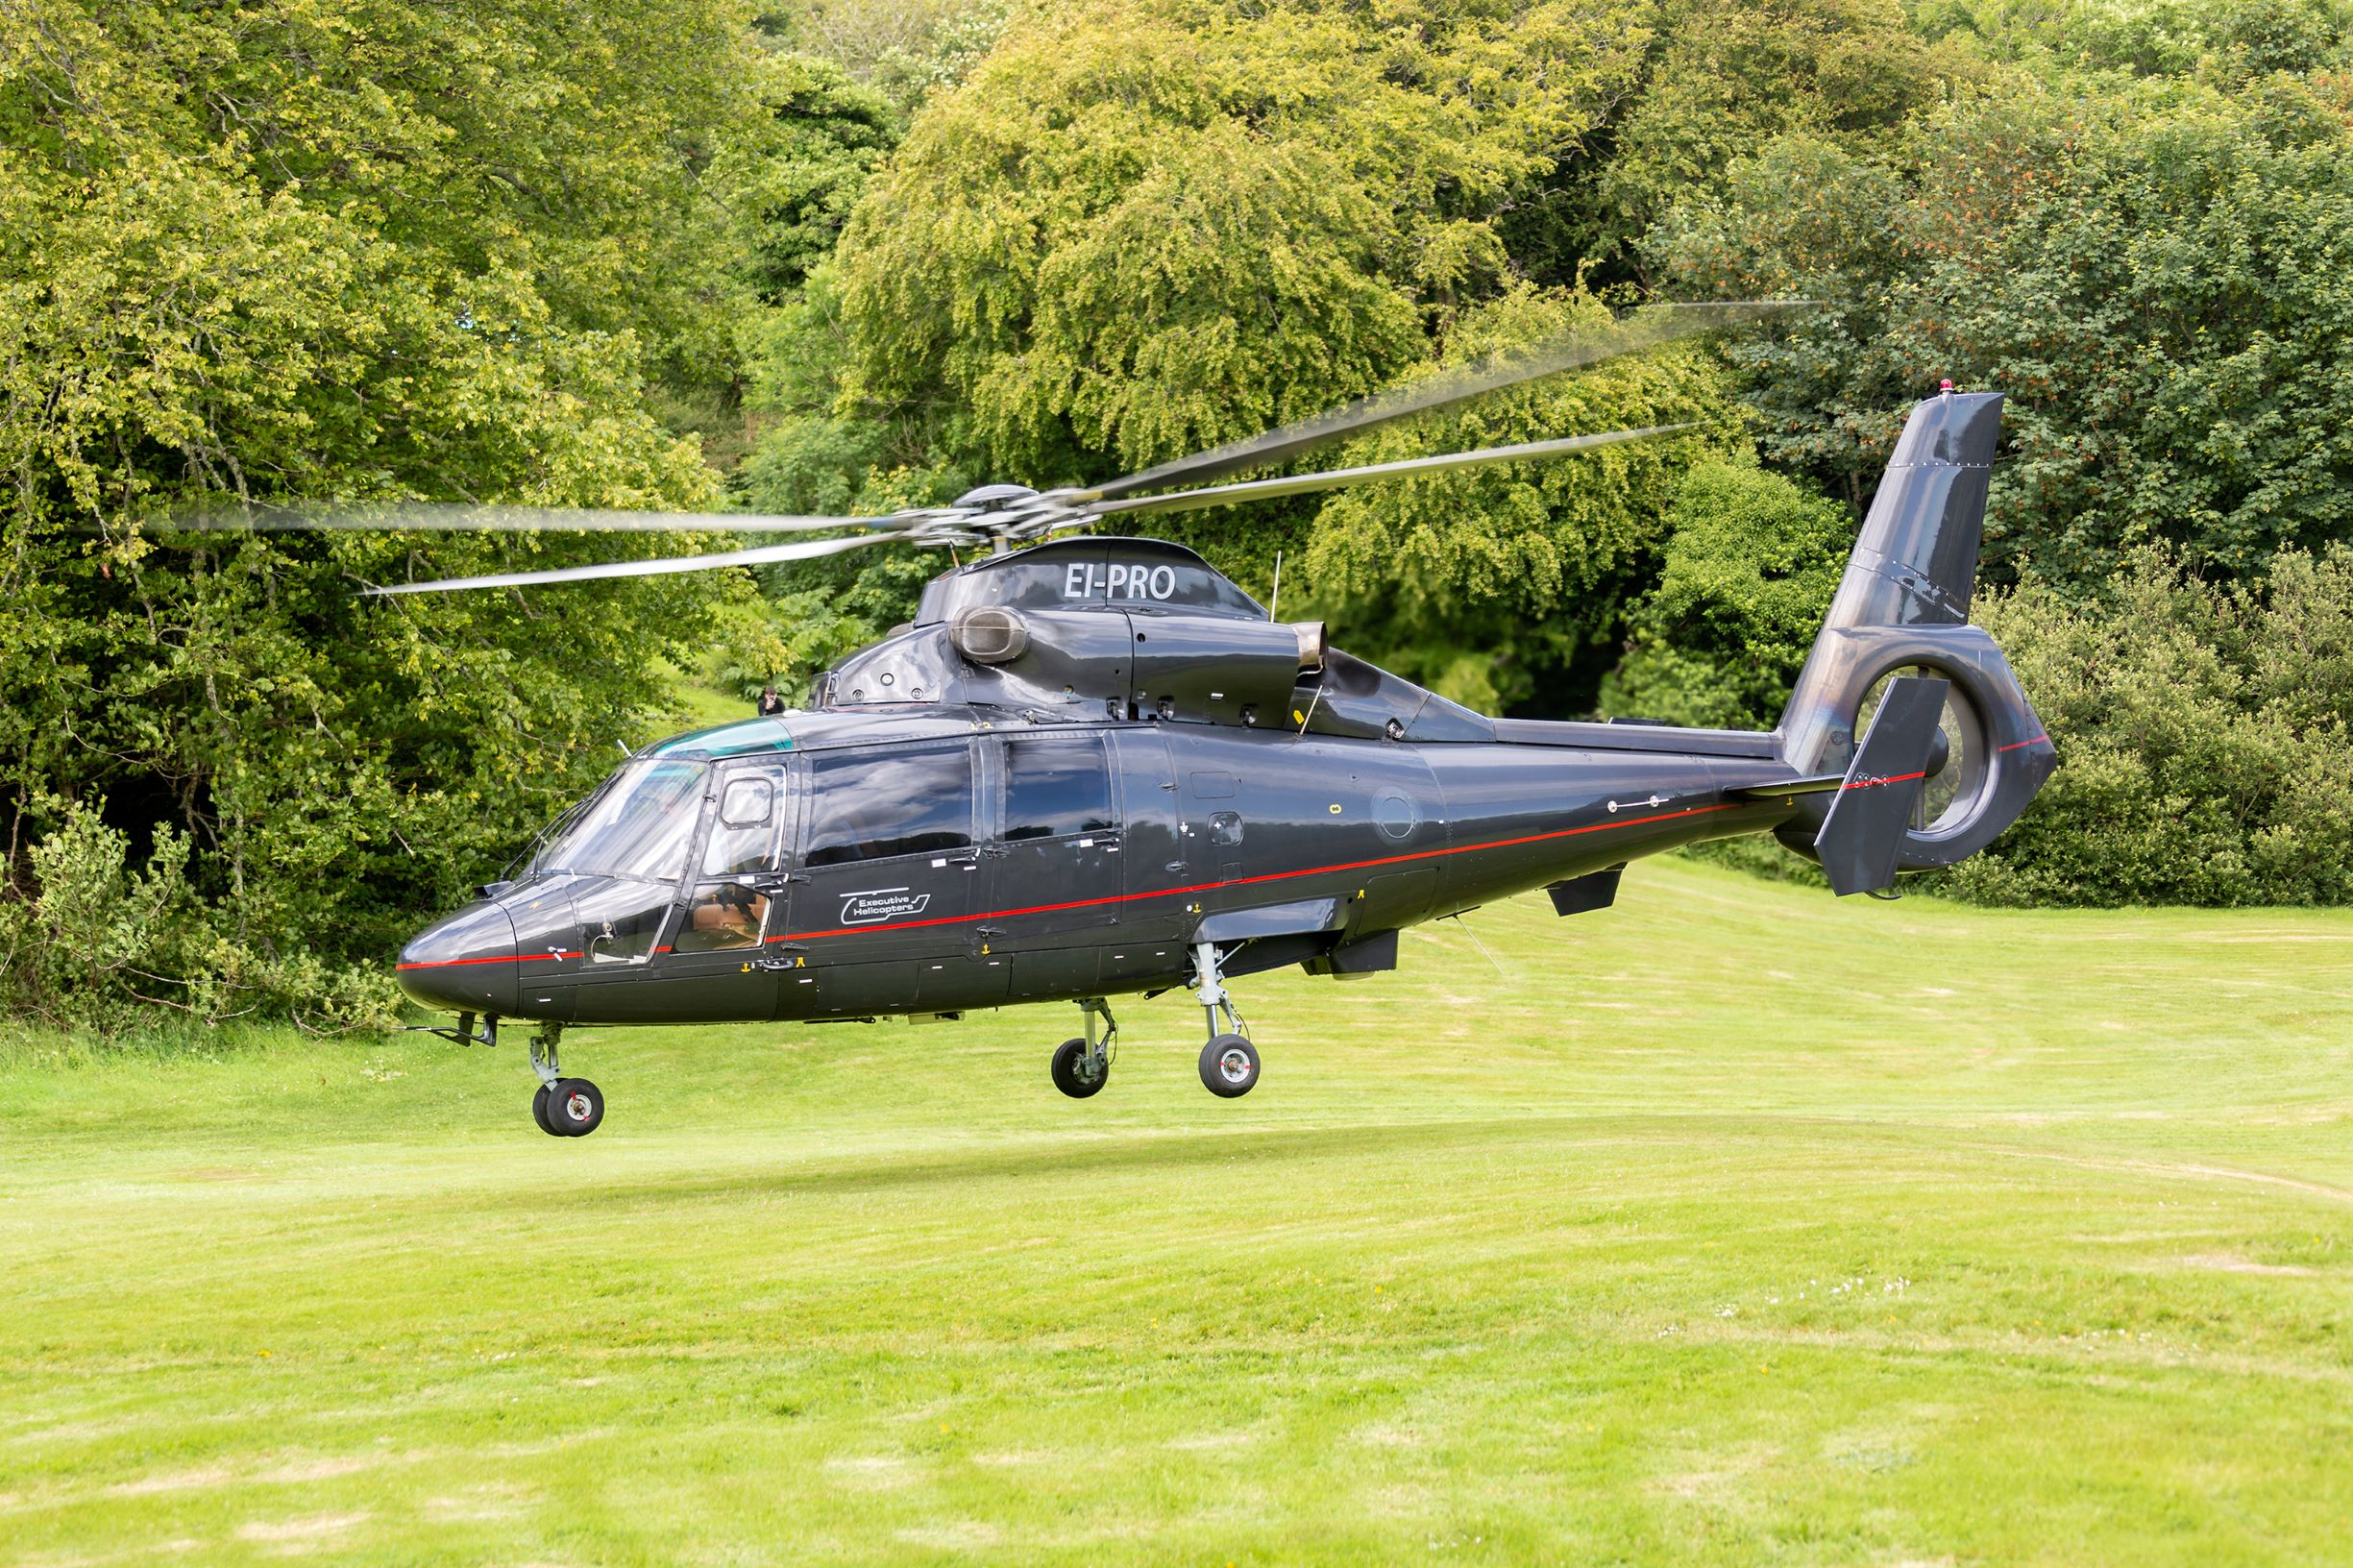 Abbeyglen Hotel Helicopter AS365 Dauphin take off